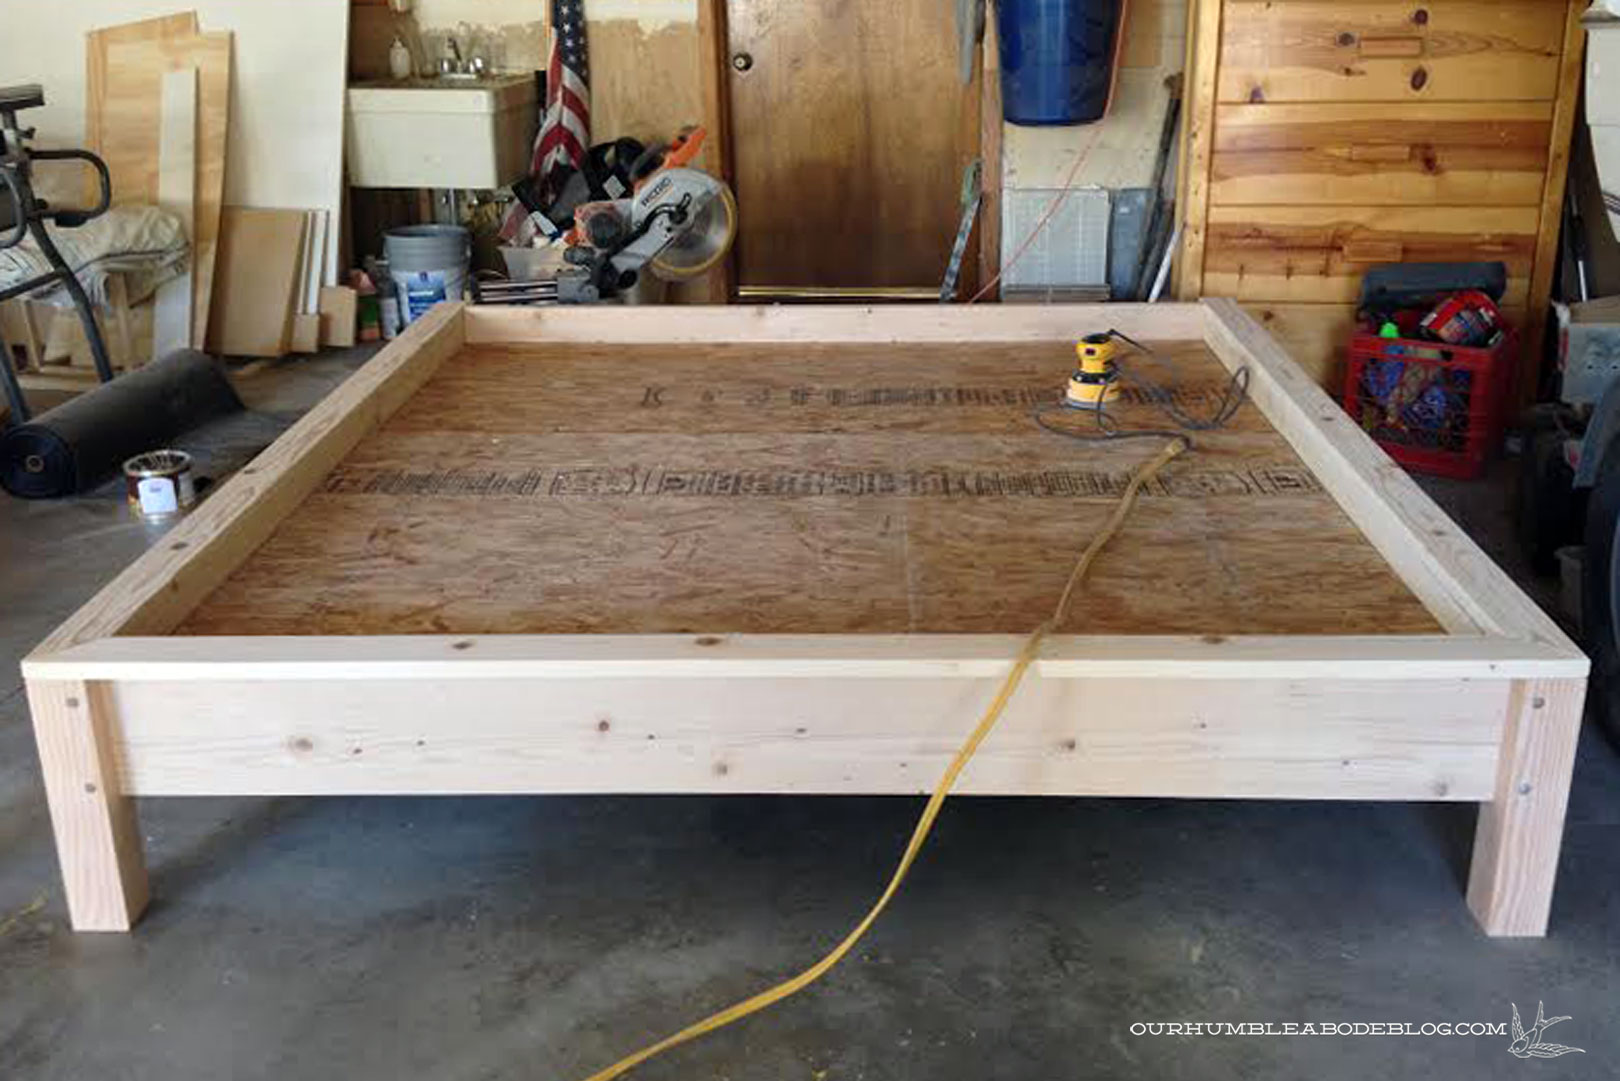 Diy wood bed frame plans - Building Bed Frame Assembled In Garage